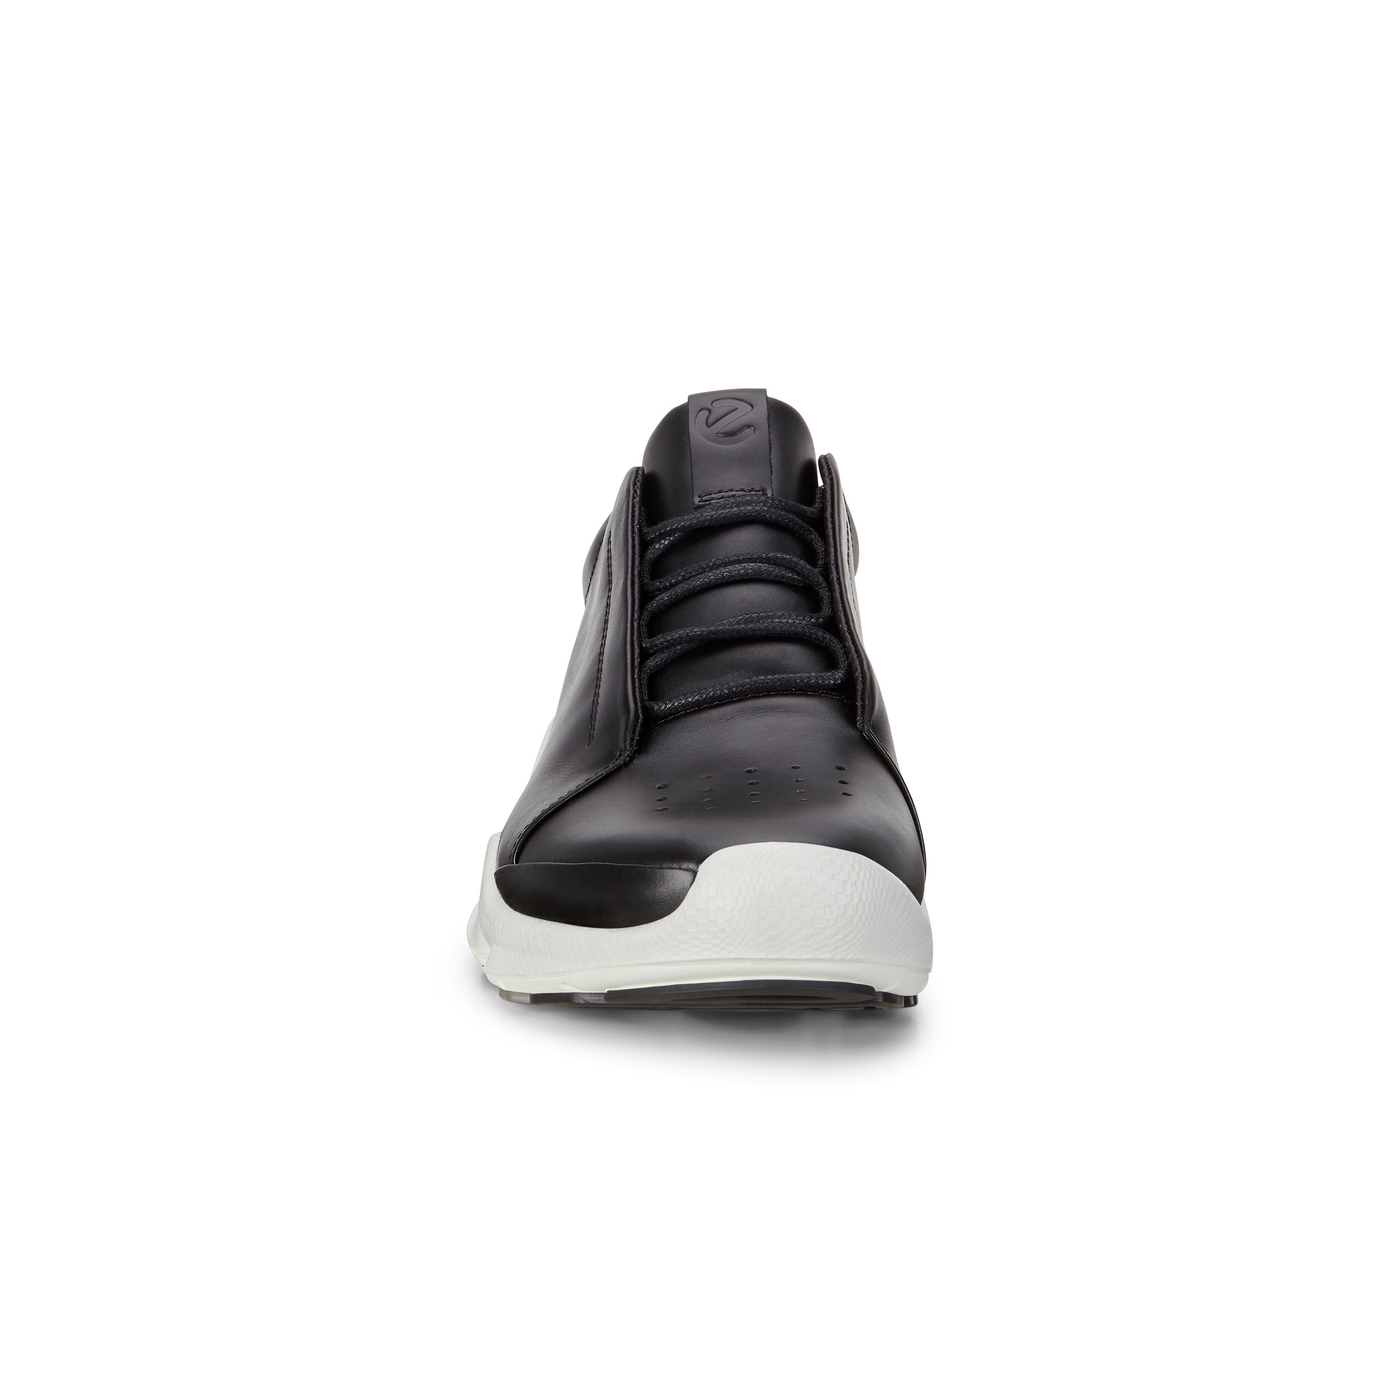 ECCO BIOM C Mens Premium Youthful Sneaker